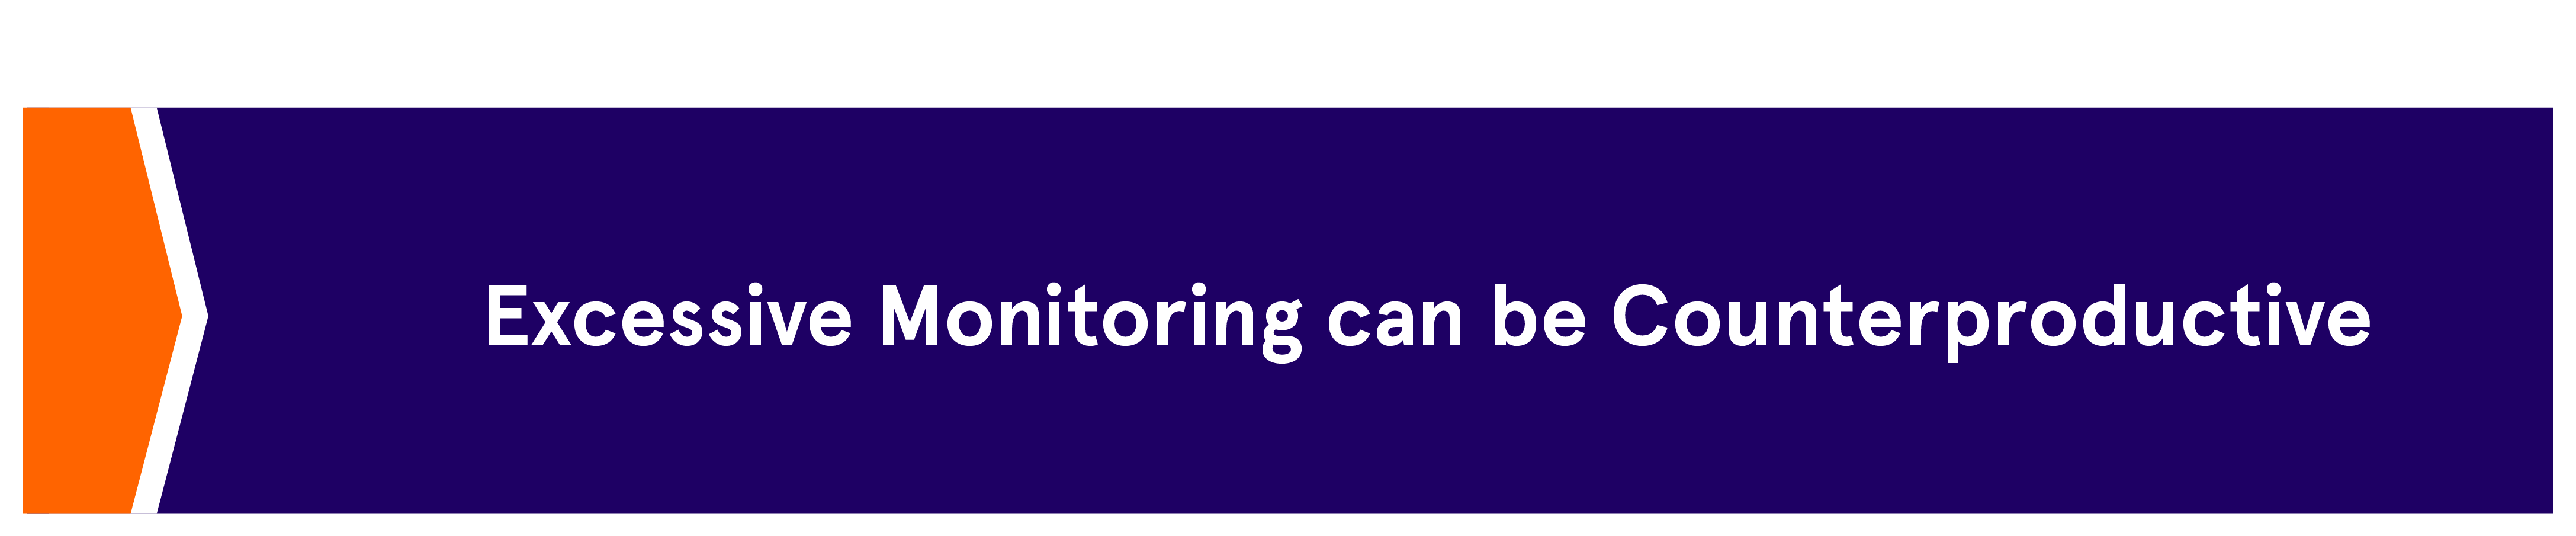 Just Capital Blog Headers__Excessive Monitoring